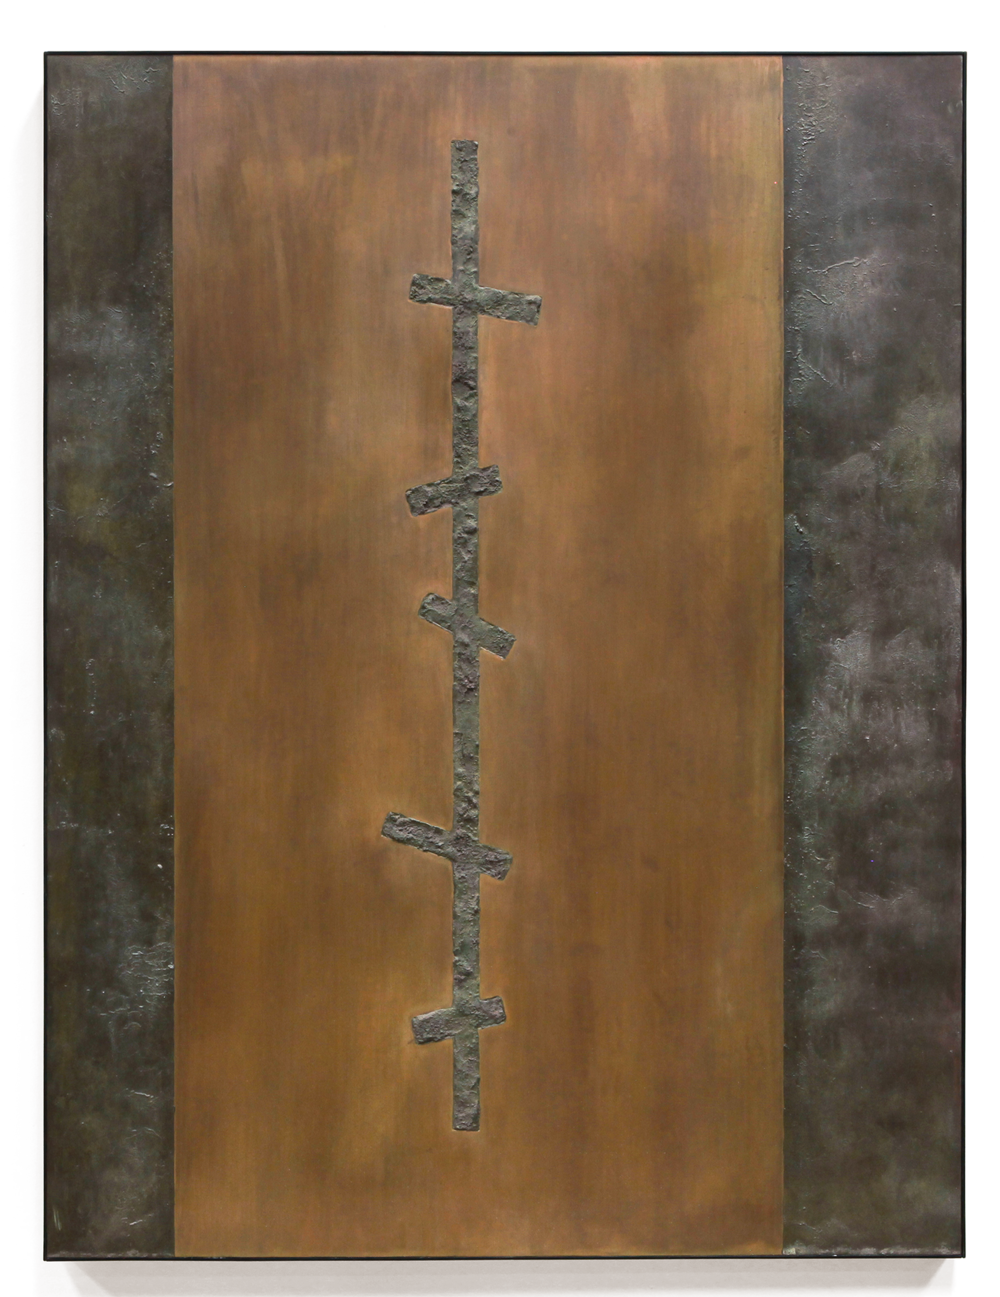 "Crosscurrent No. 2 , Jan. 2015, copper, tin, pine, plywood aluminum, 47 3/4""h x 36 1/4""w x 2""d"